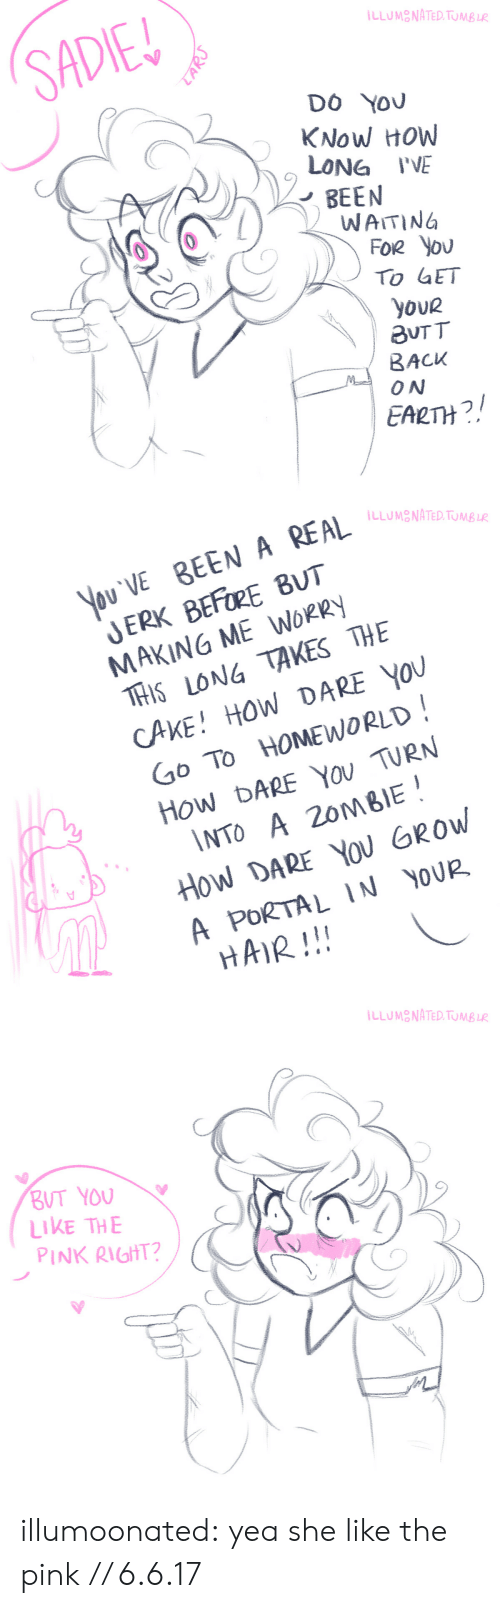 Tumblr, Blog, and Cake: LLUMONATED. TUMB LR  SADIE  DO YOU  KNow HOW  LONG I'VE  BEEN  WAITING  FOR You  To GET  youR  aUT T  BACK  ON  EALTH?  LARJ   You VE BEEN A REAL  JERK BEFORE BUT  MAKING ME WORRY  THIS LONG TAKES THE  CAKE! HOW DARE YOU  Go To HOMEWORLD  How DARE You TURN  \NTO A 20MBIE  How DARE YOu GROW  ILLUMONATED. TUMB LR  A PORTAL IN YOUR  HAIR!!!   ILLUMONATED. TUMB LR  BUT YOU  LIKE THE  PINK RIGHT? illumoonated:  yea she like the pink // 6.6.17